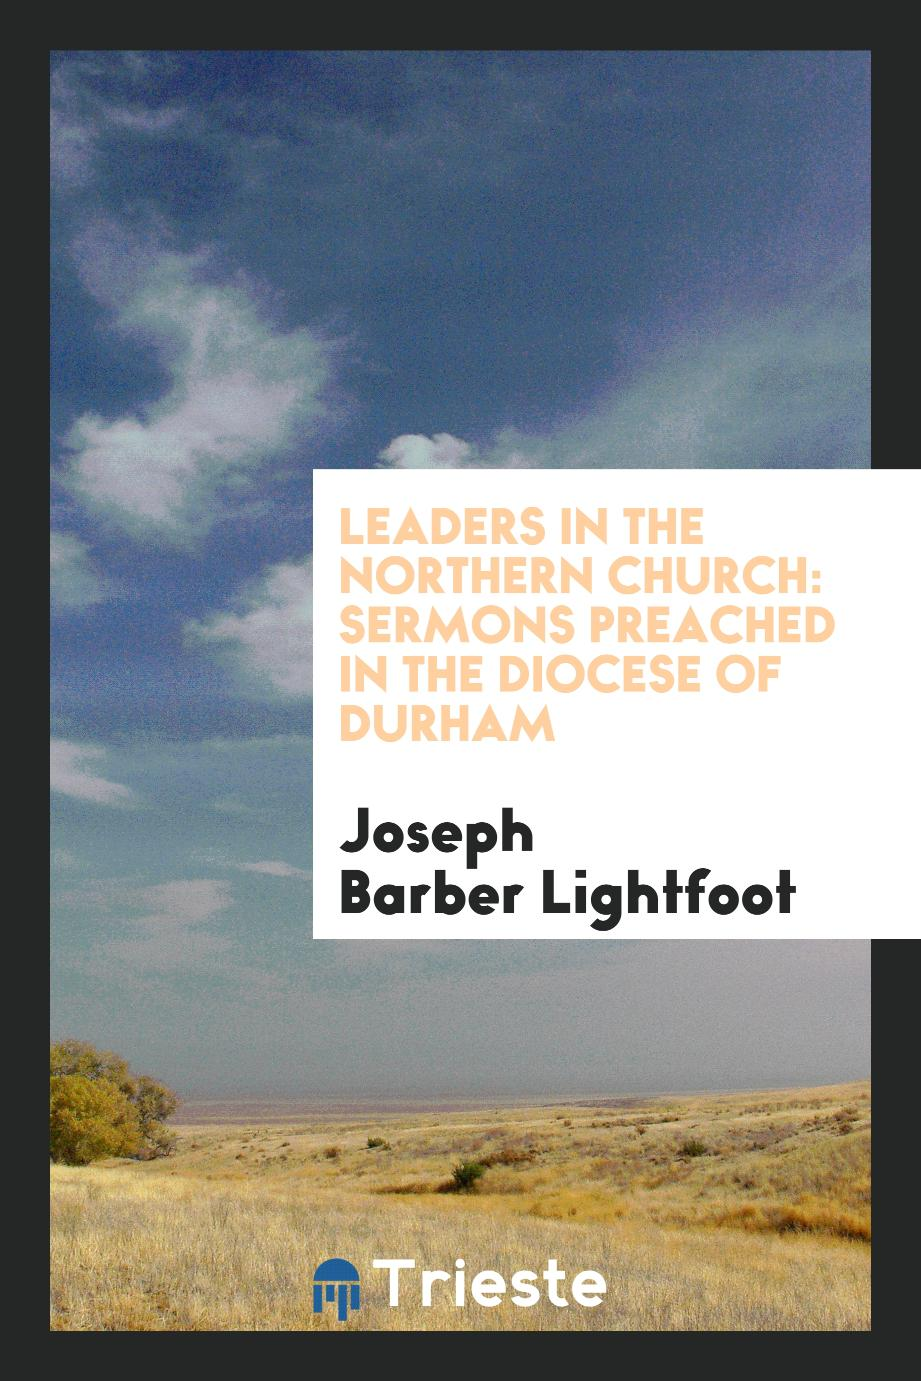 Leaders in the northern church: sermons preached in the Diocese of Durham